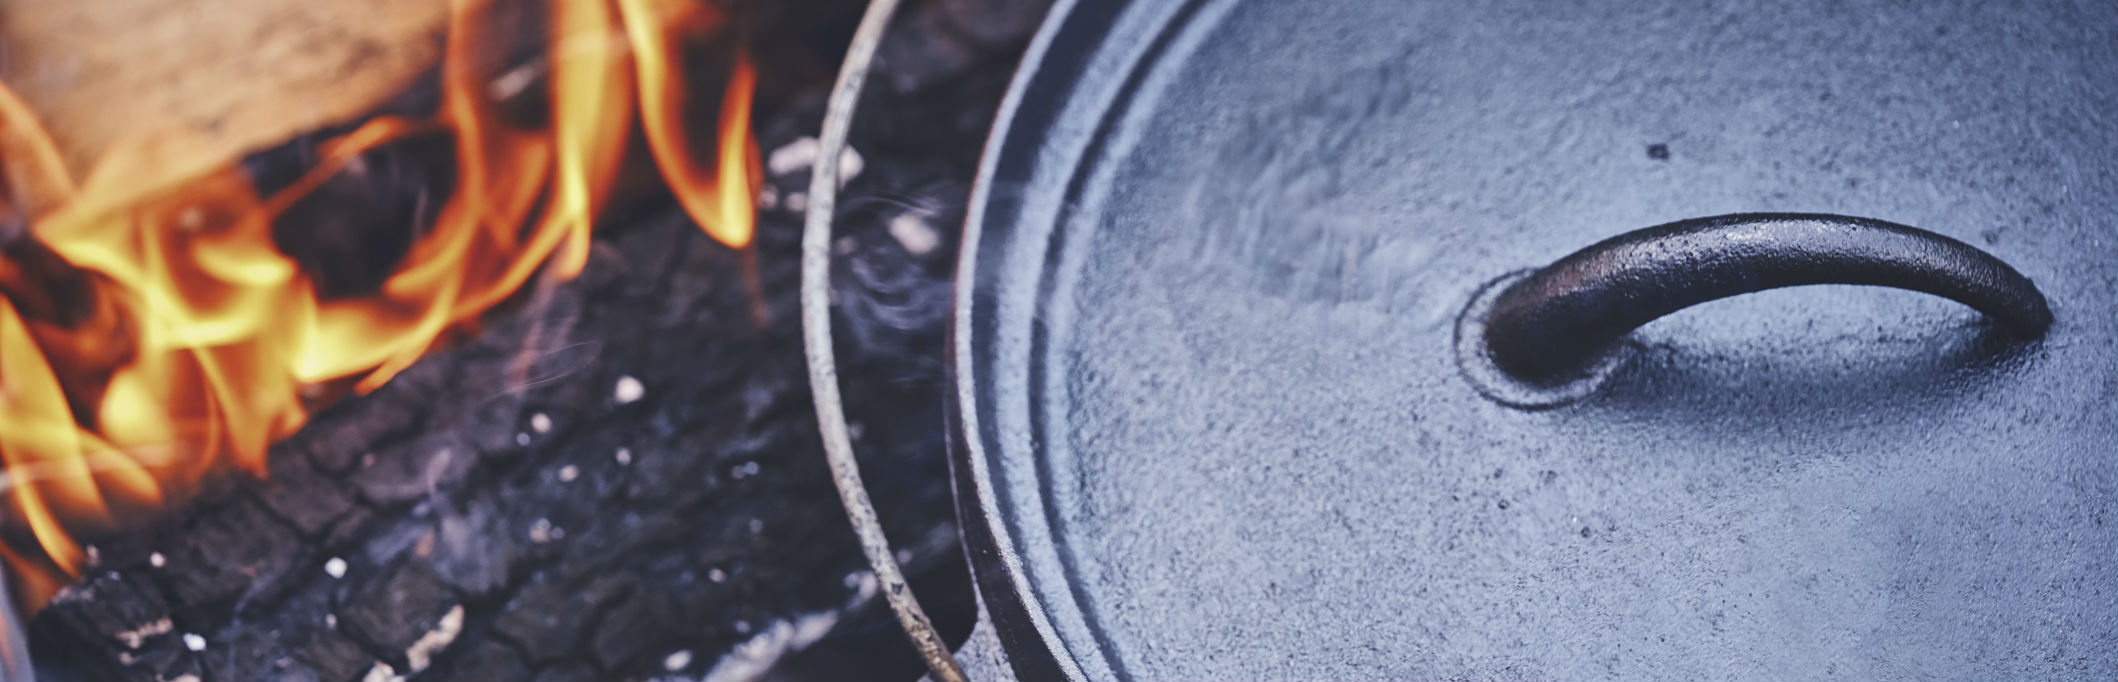 Cooking without power: an introduction to dutch oven cooking